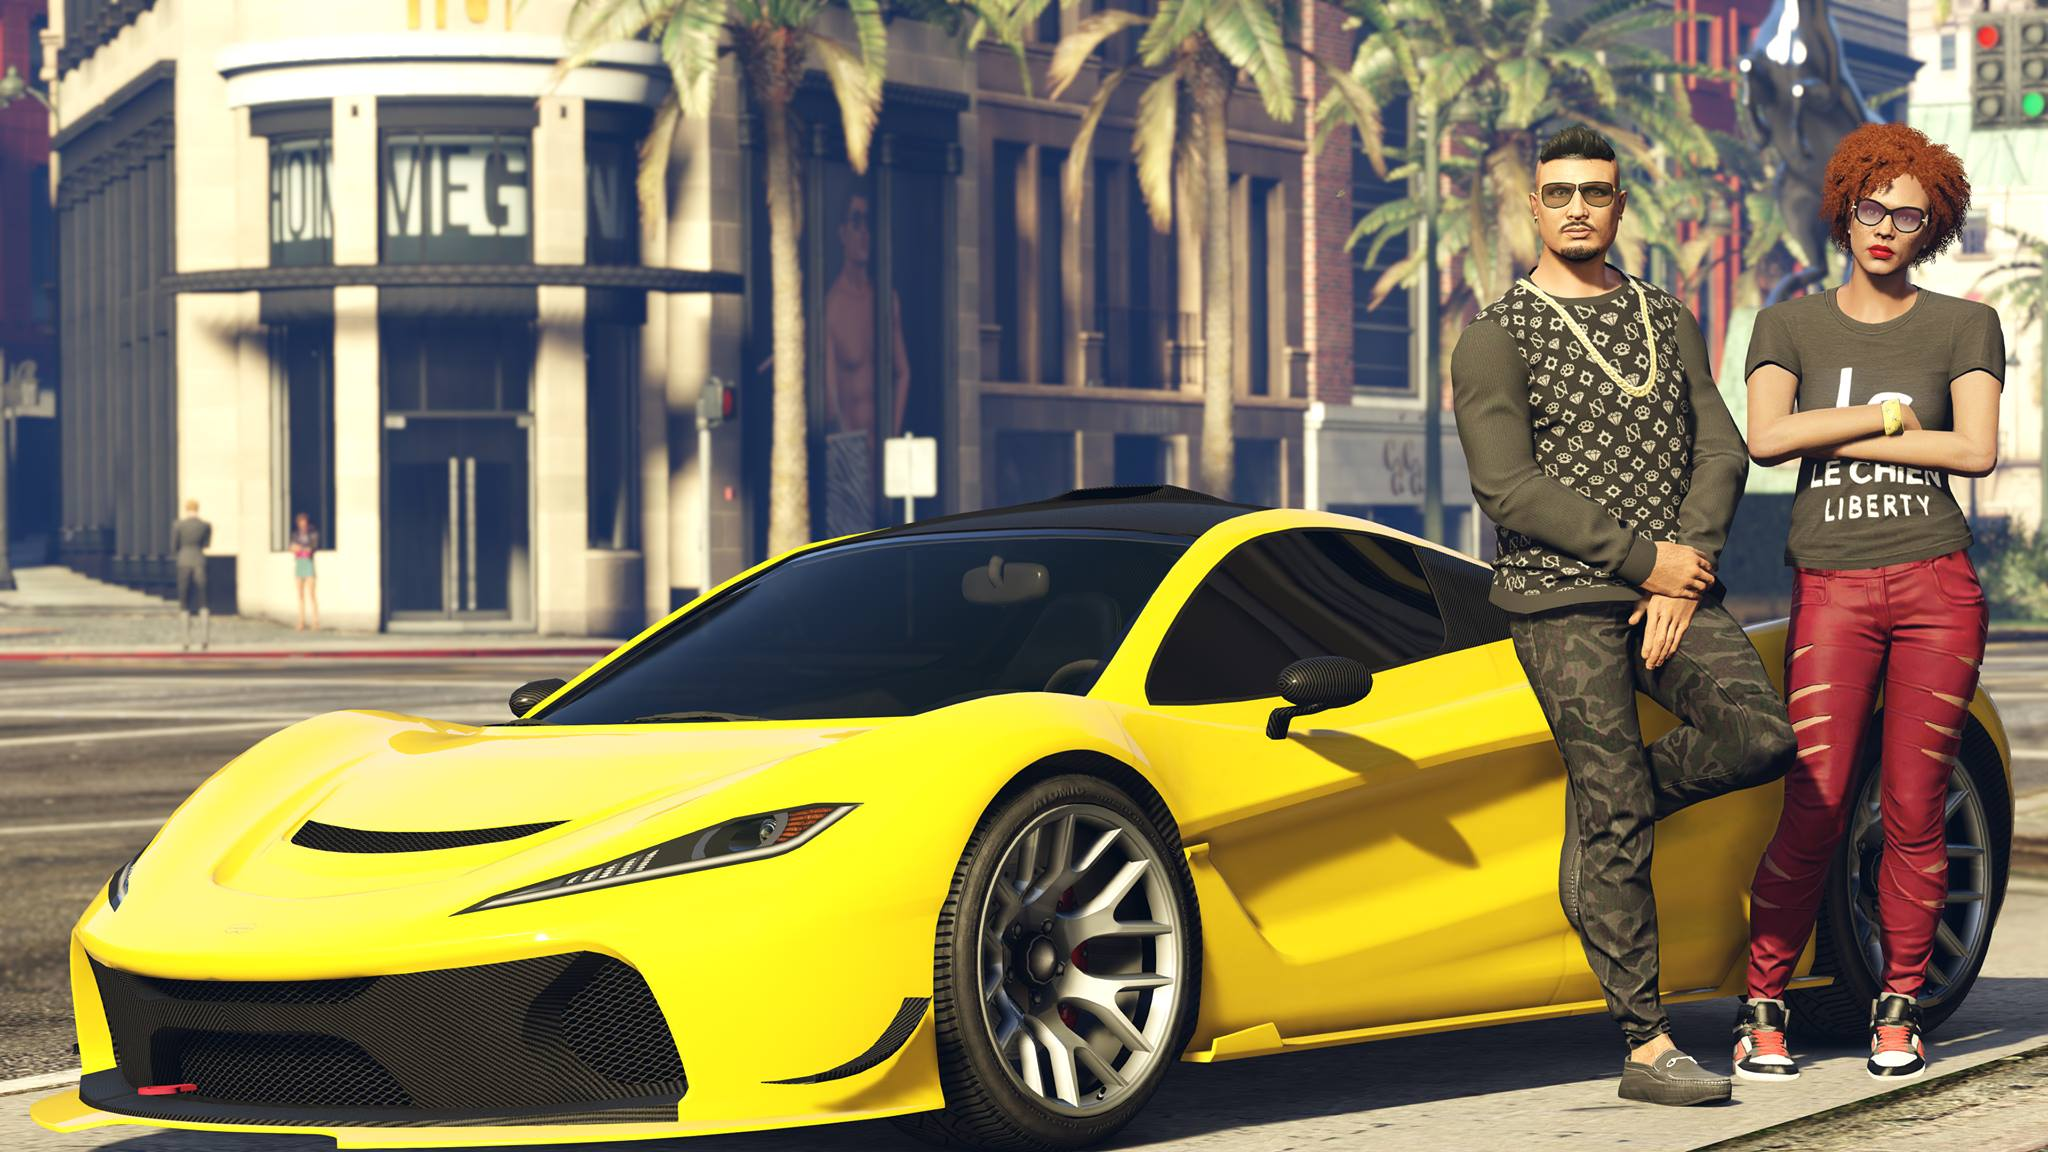 GTA 6' Release Date Announcement Expected Soon